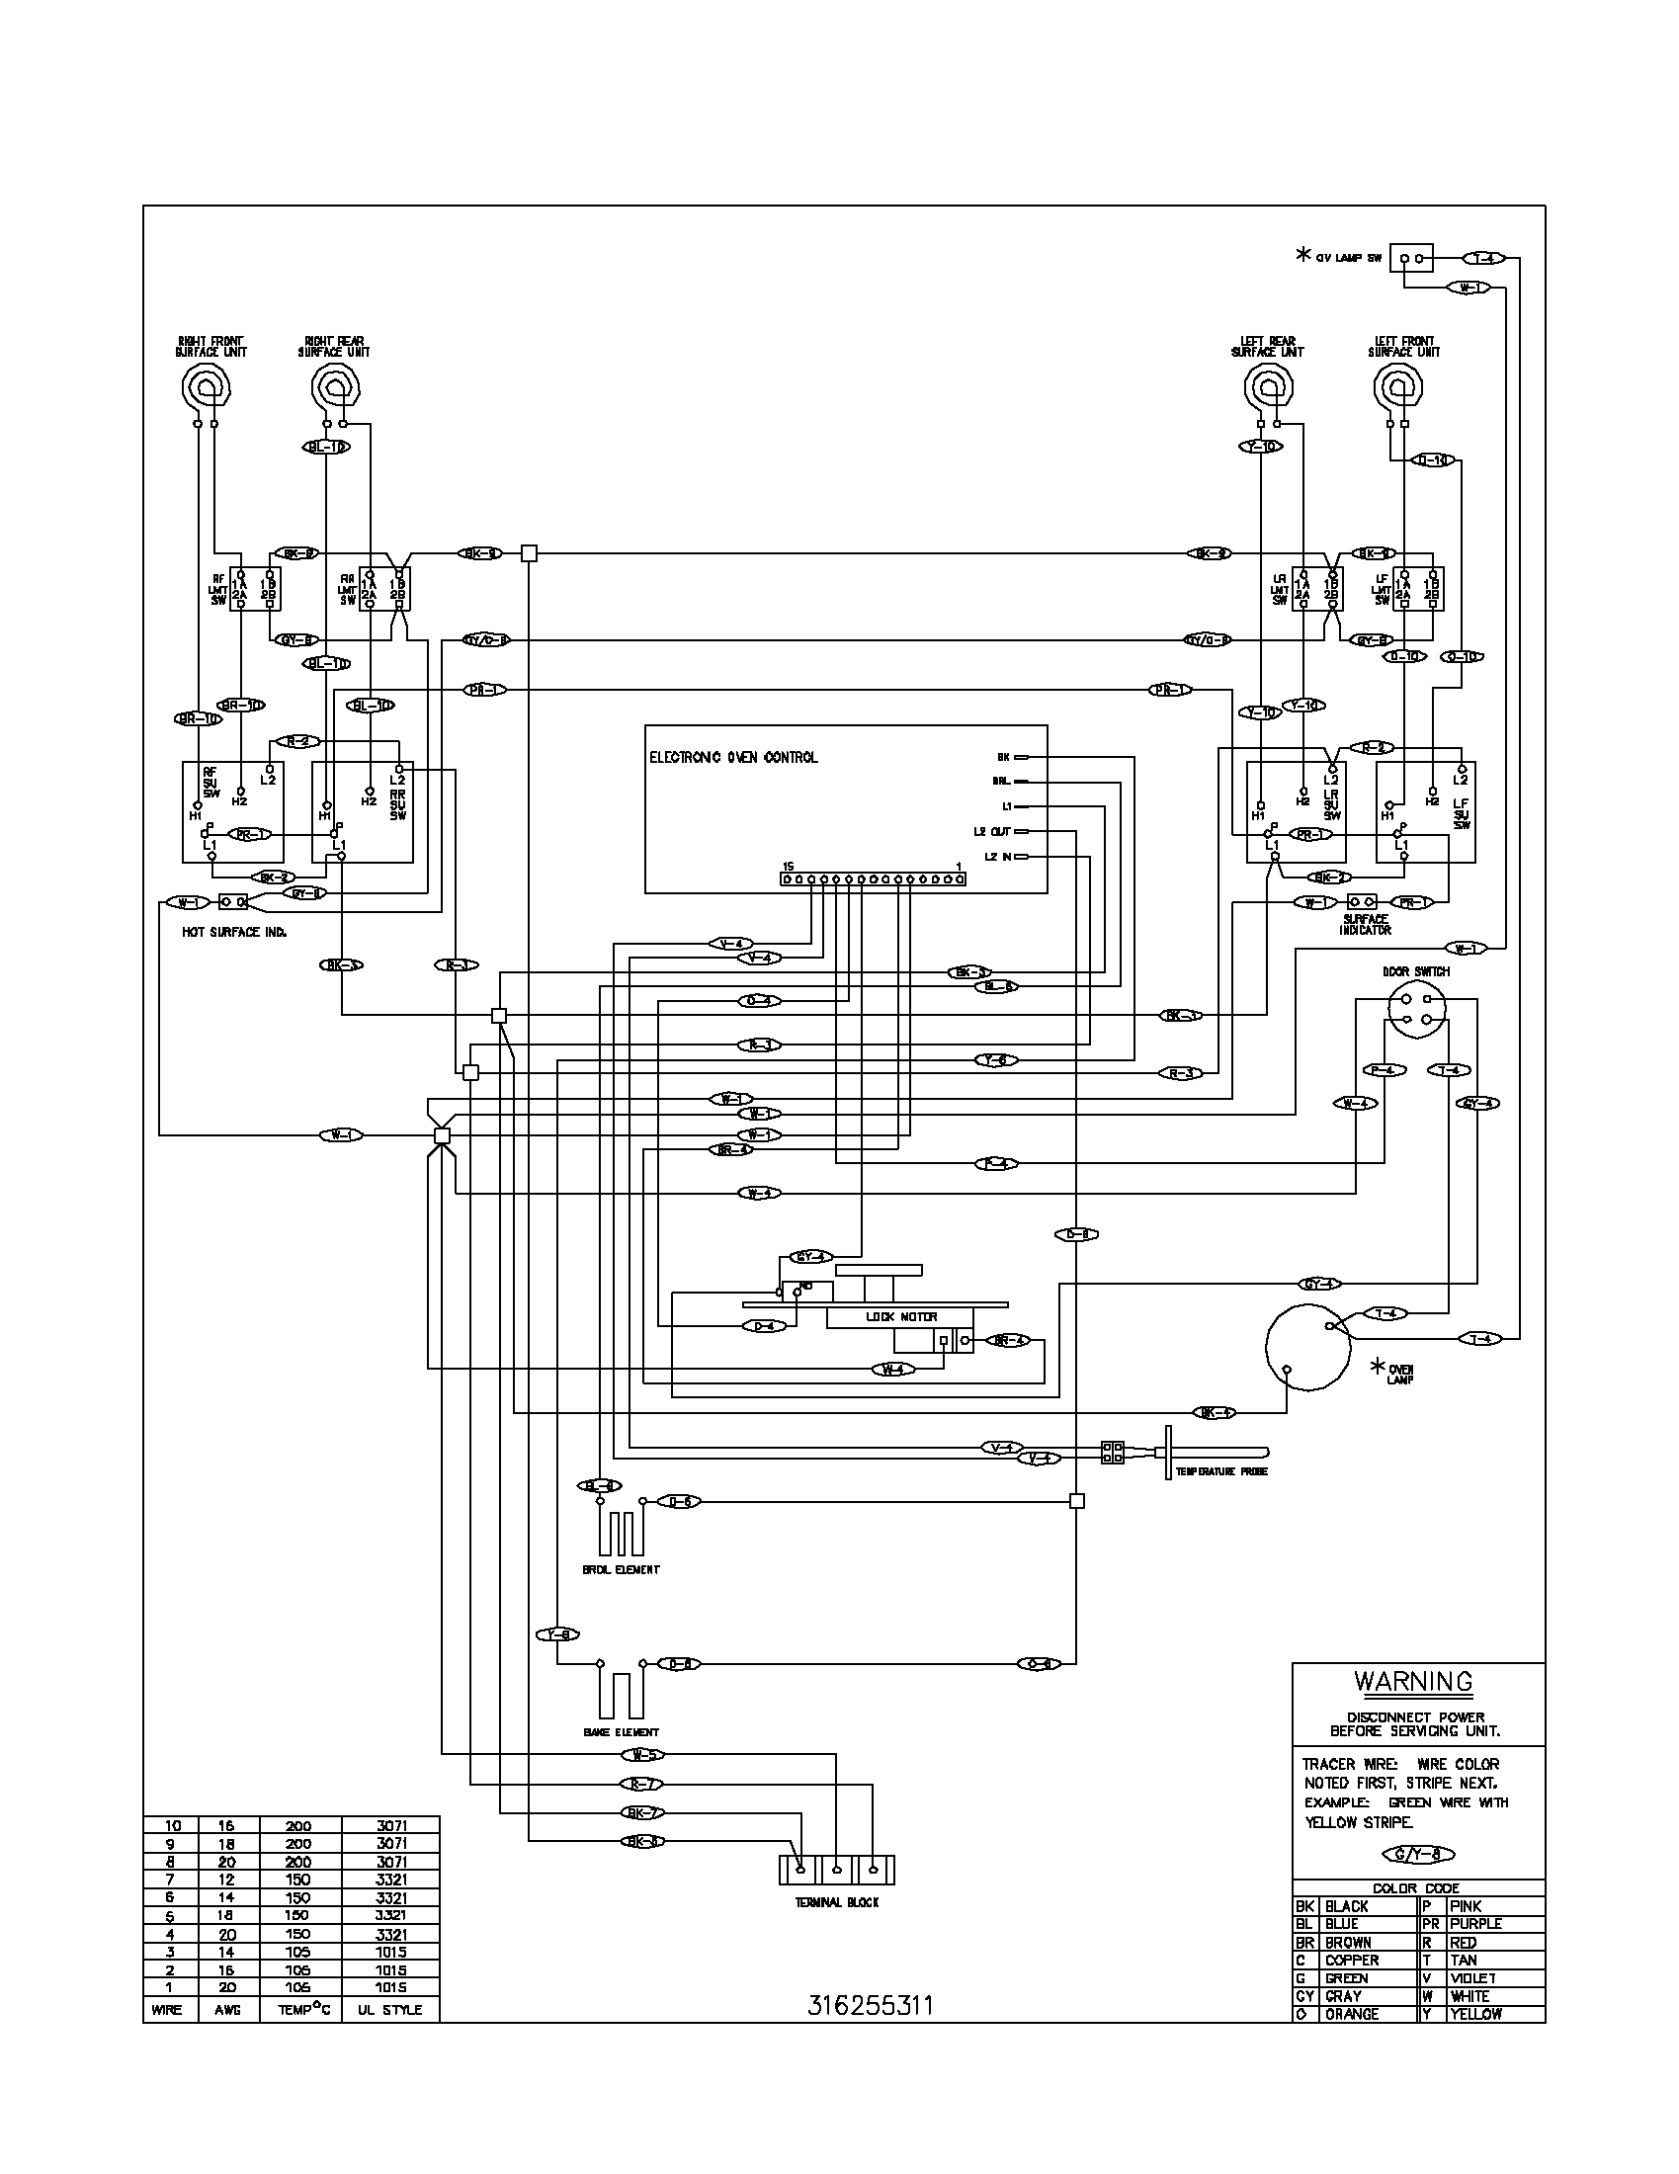 wiring diagram electric range wiring image wiring wiring diagram of electric stove wiring image on wiring diagram electric range